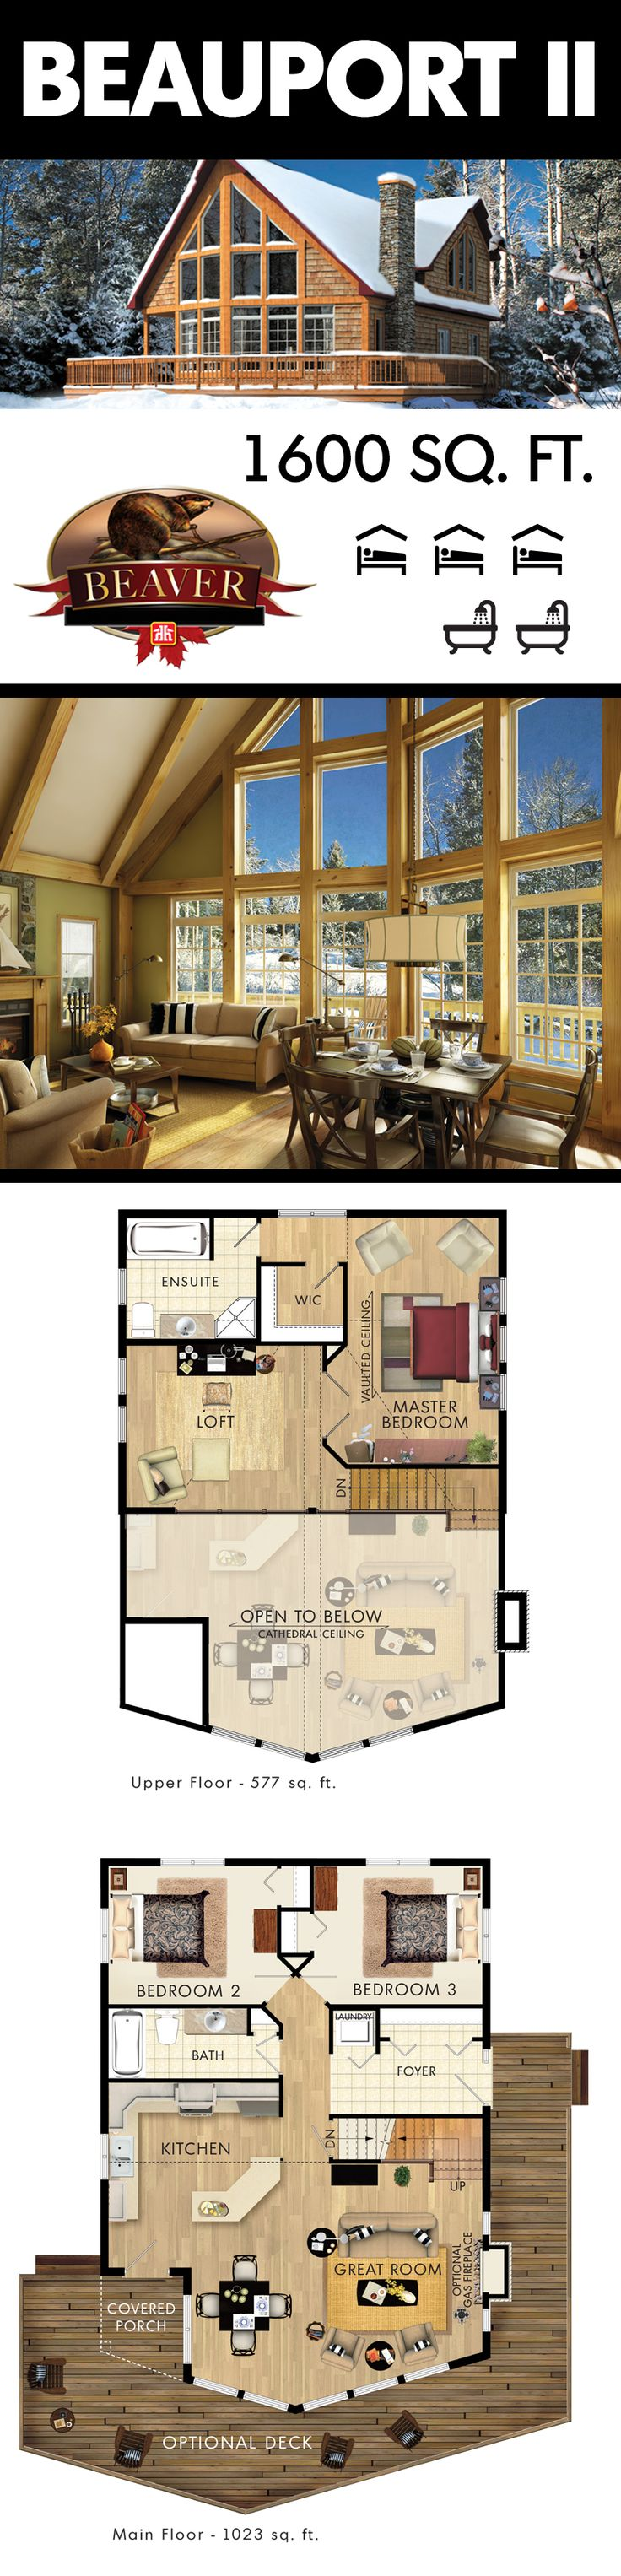 The Beauport II is perfect as a #family summer #home or even a winter chalet. #BeaverHomesandCottages